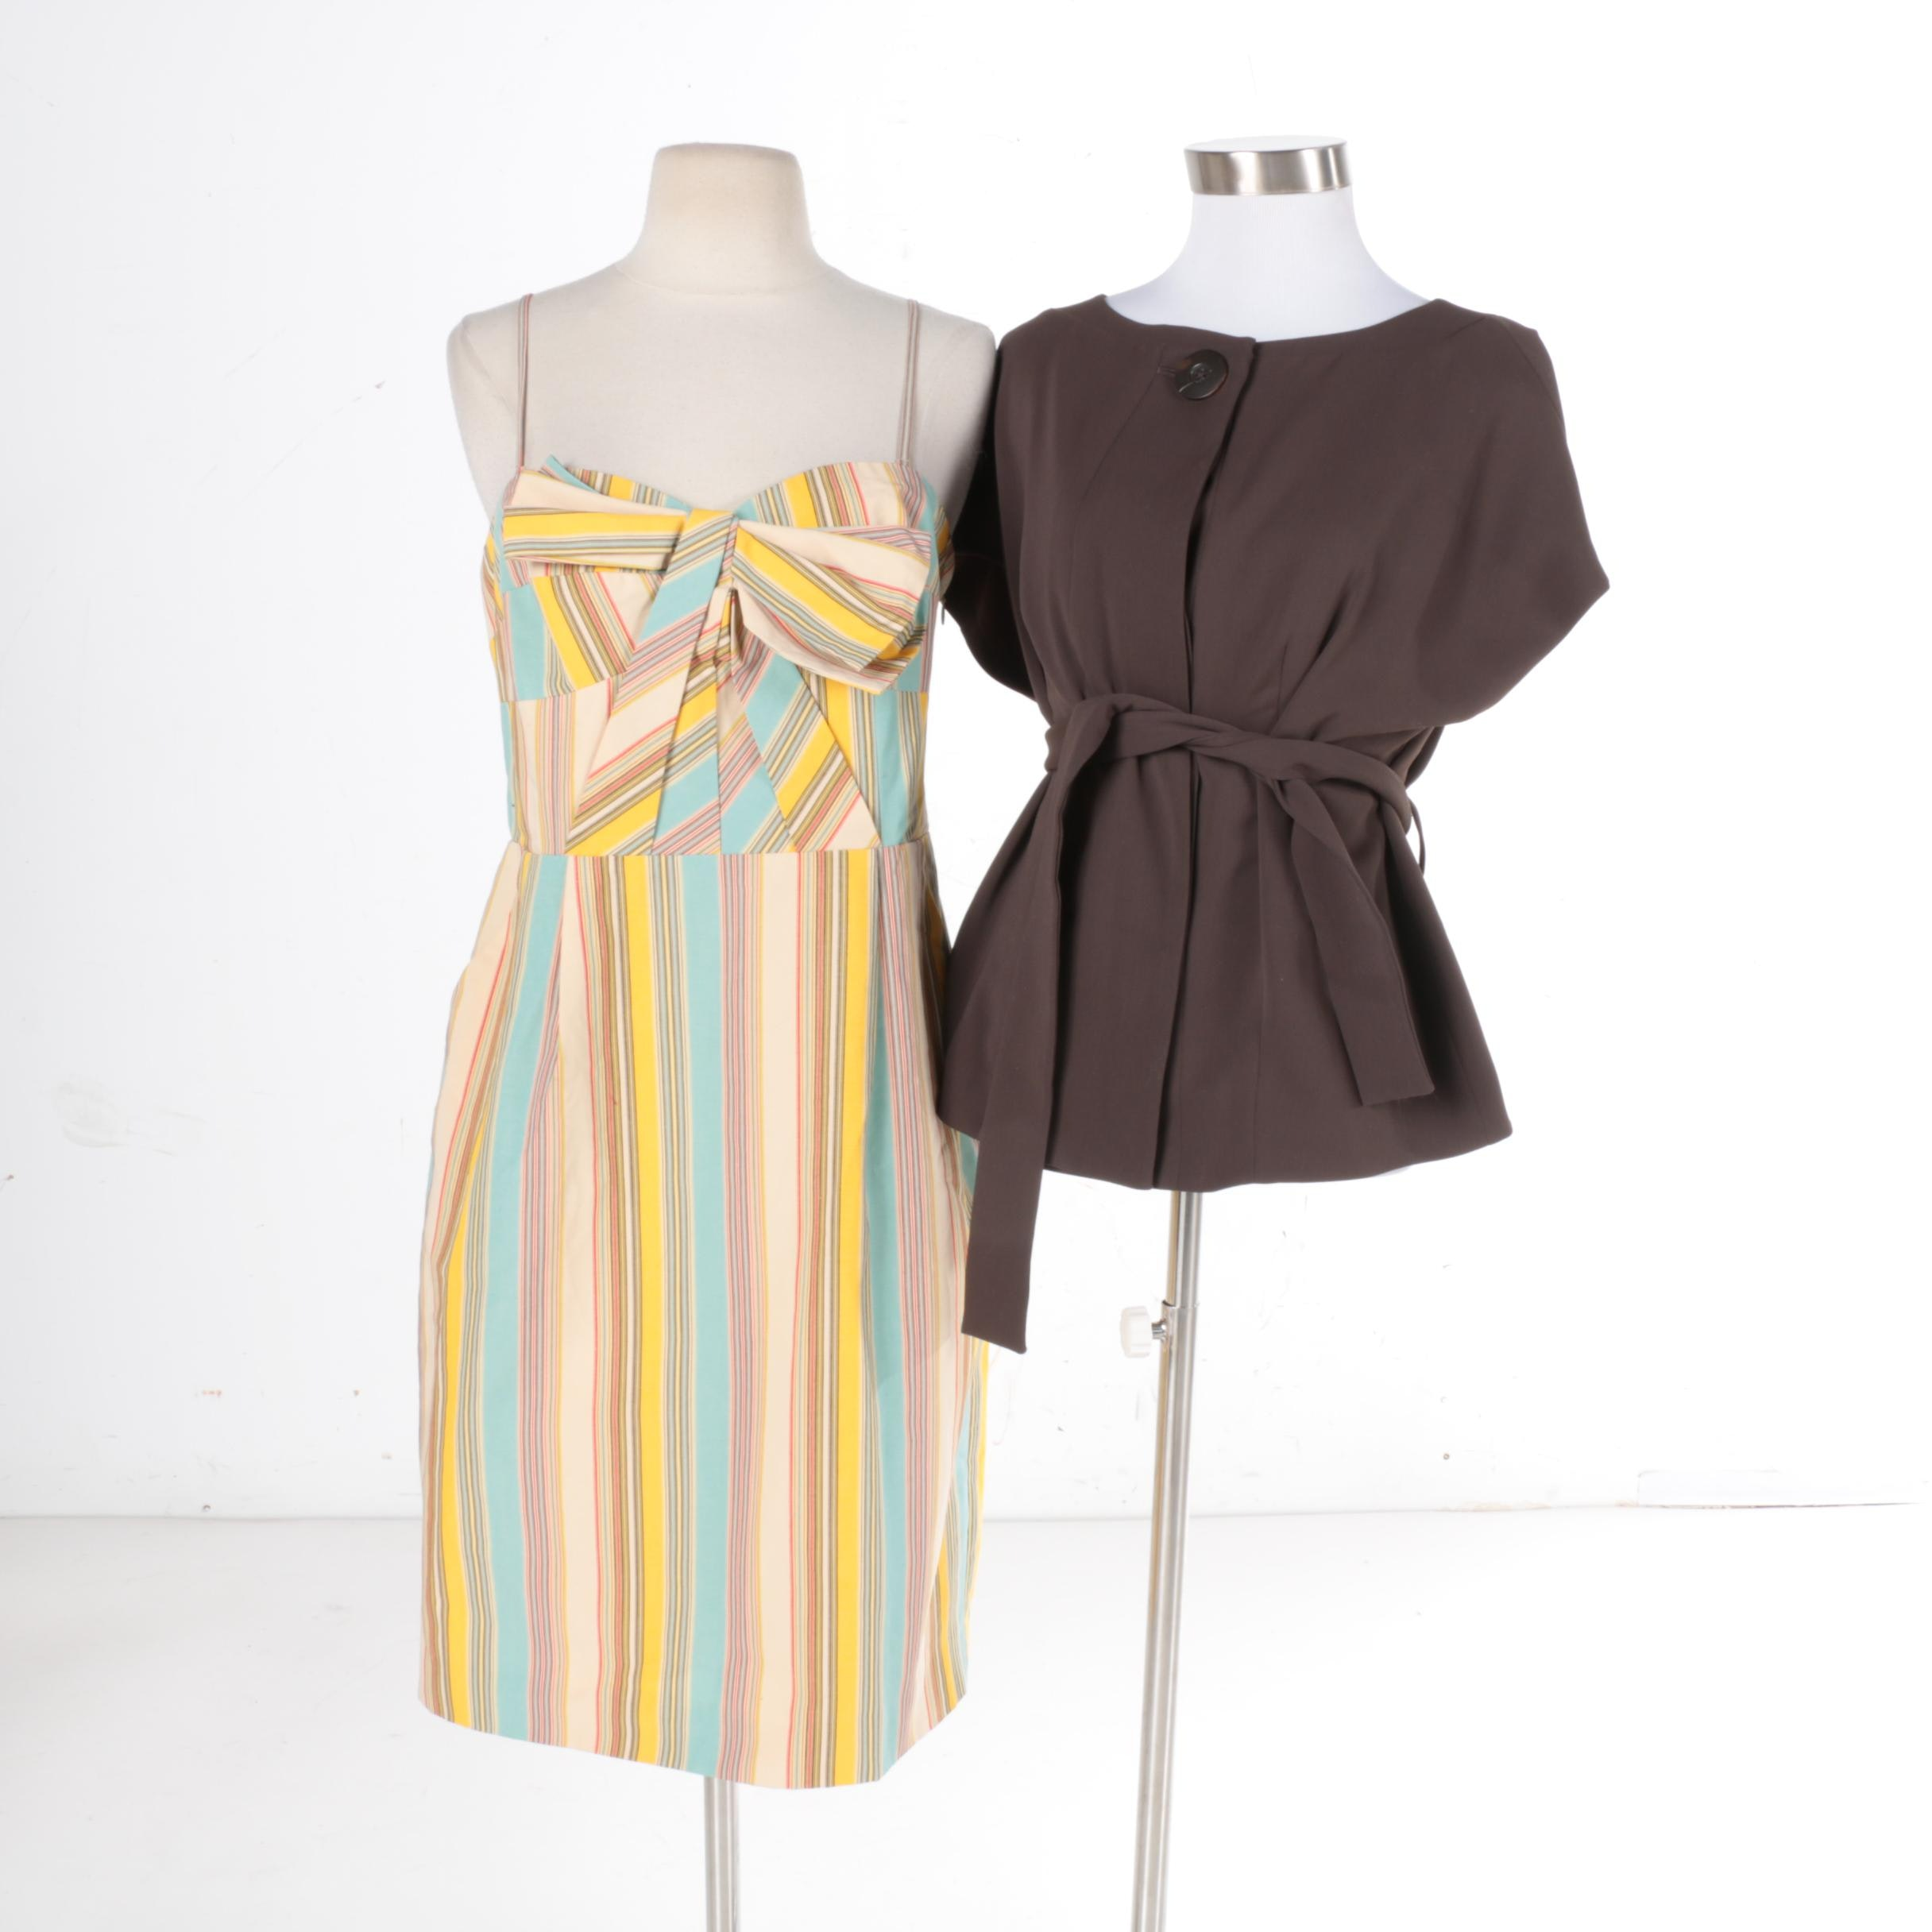 Women's Dress and Belted Top Including Moulinette Soeurs